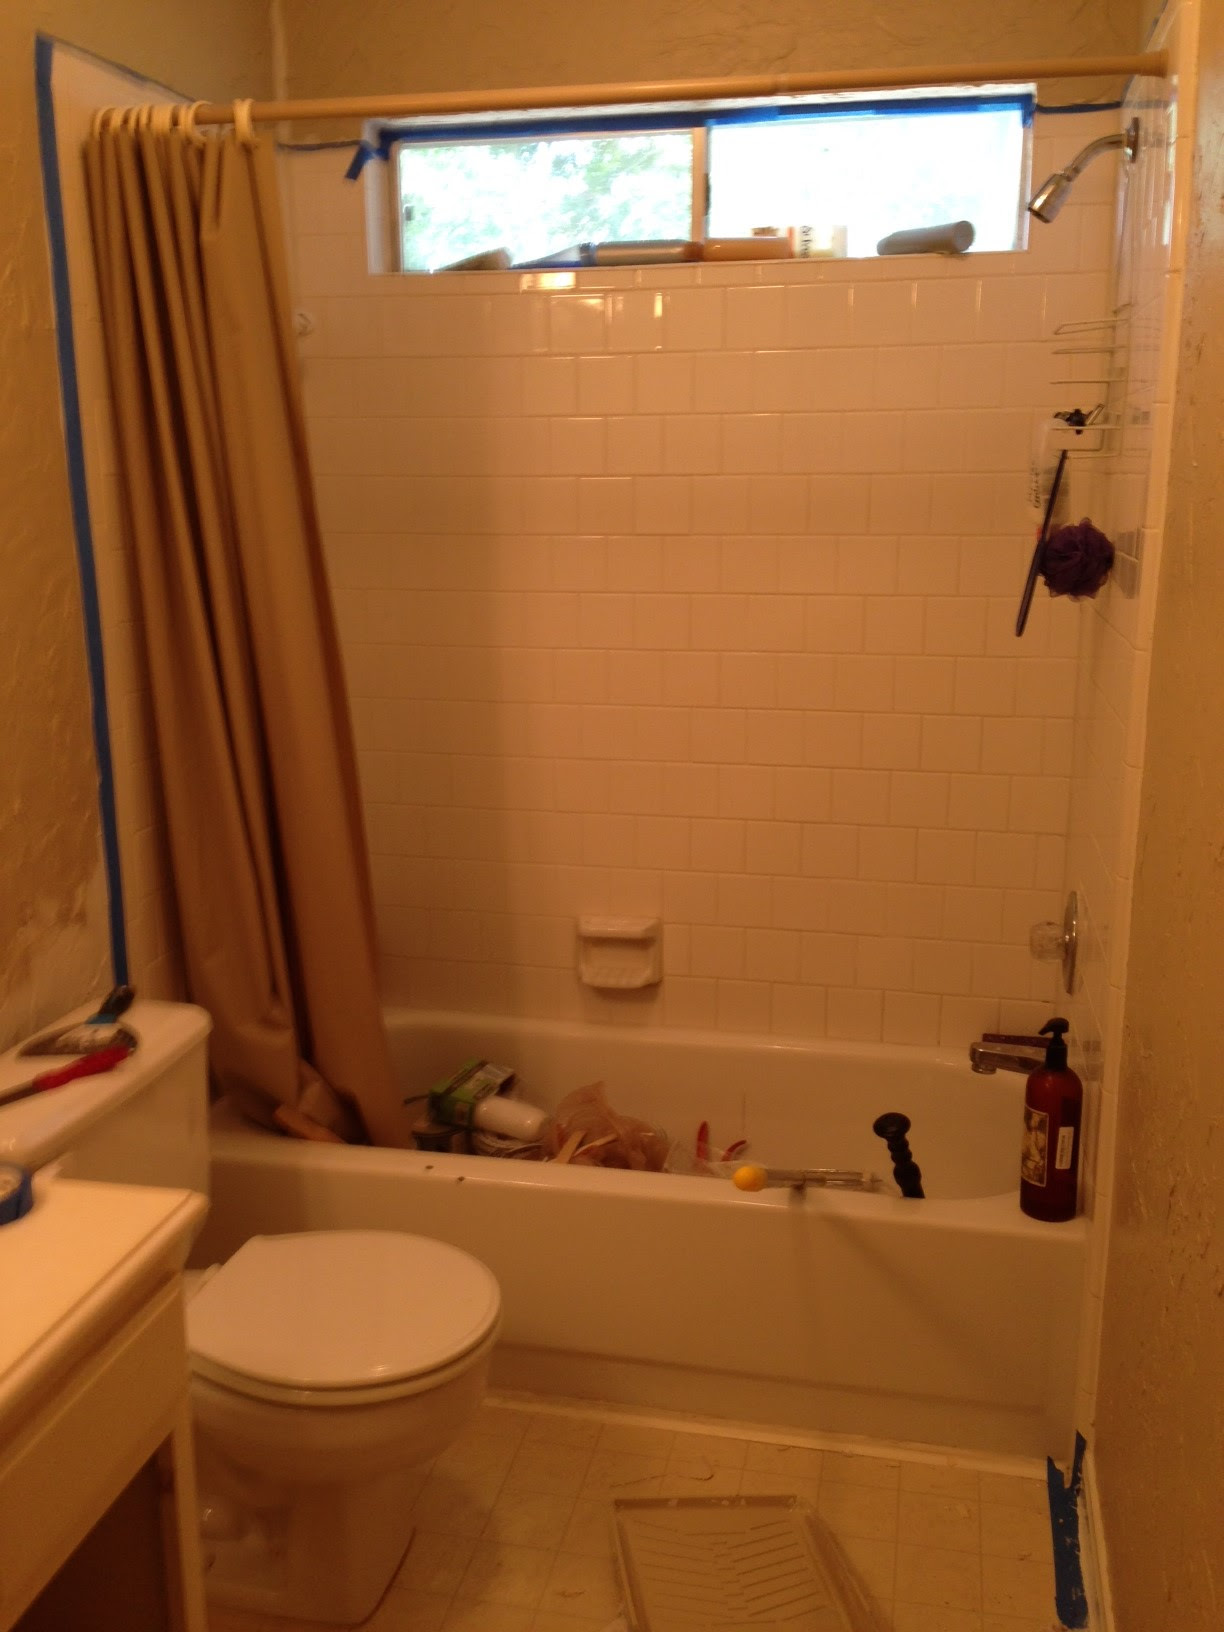 How to convert tub to walk in shower